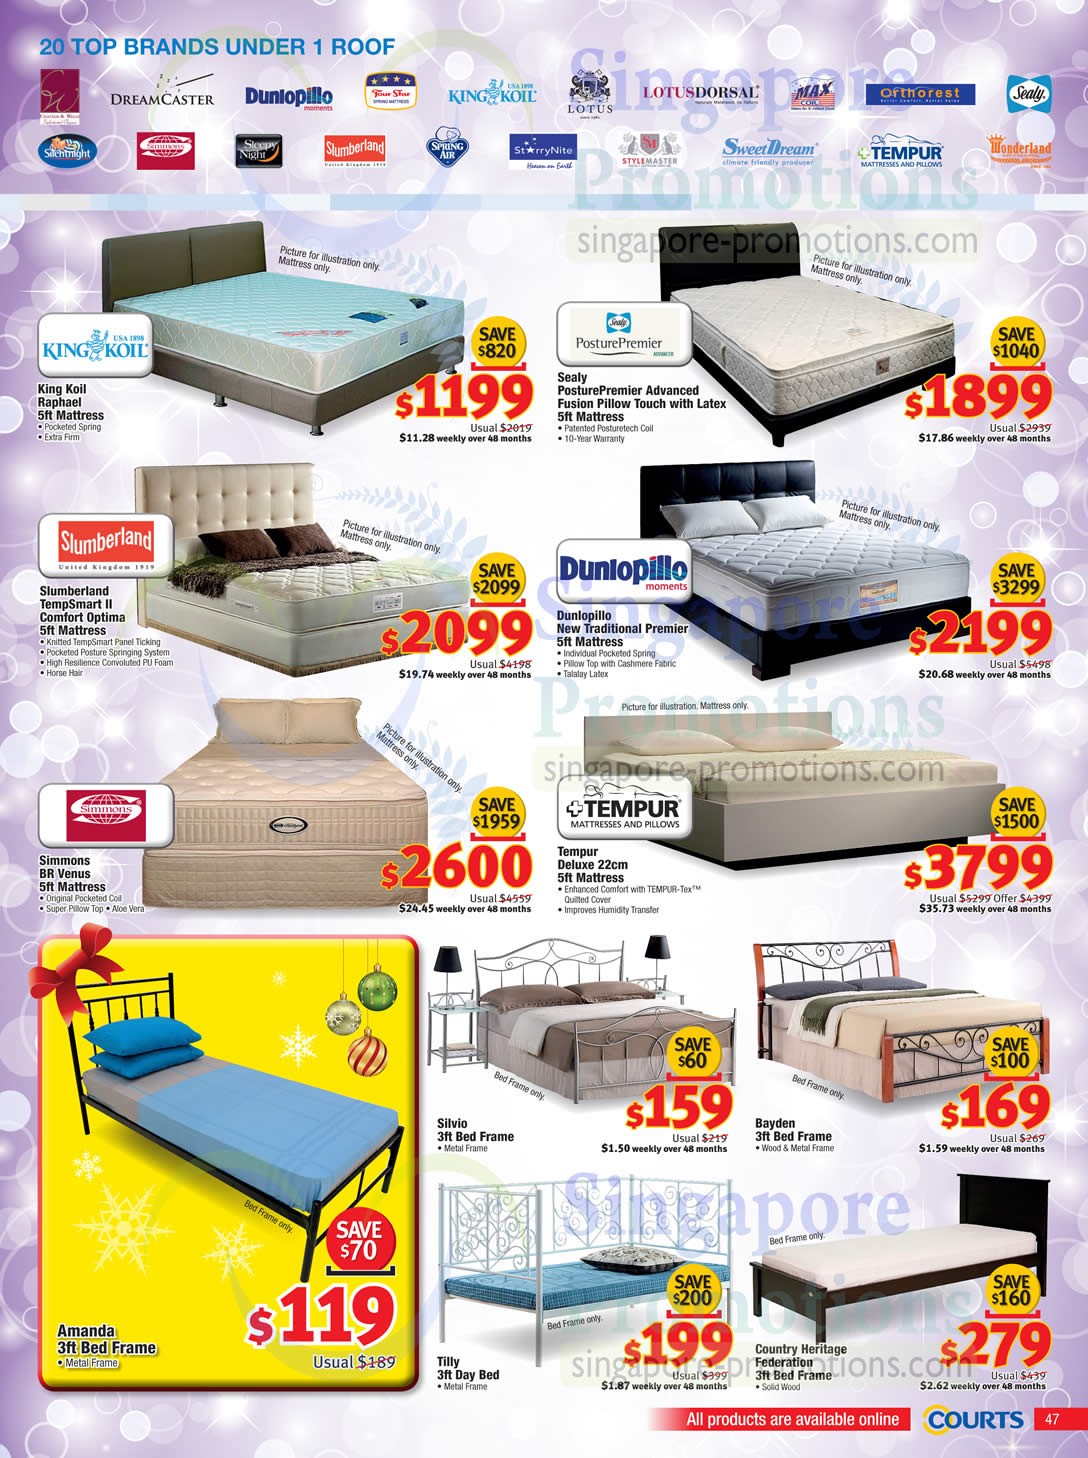 Mattresses Bed Frames King Koil Sealy Slumberland